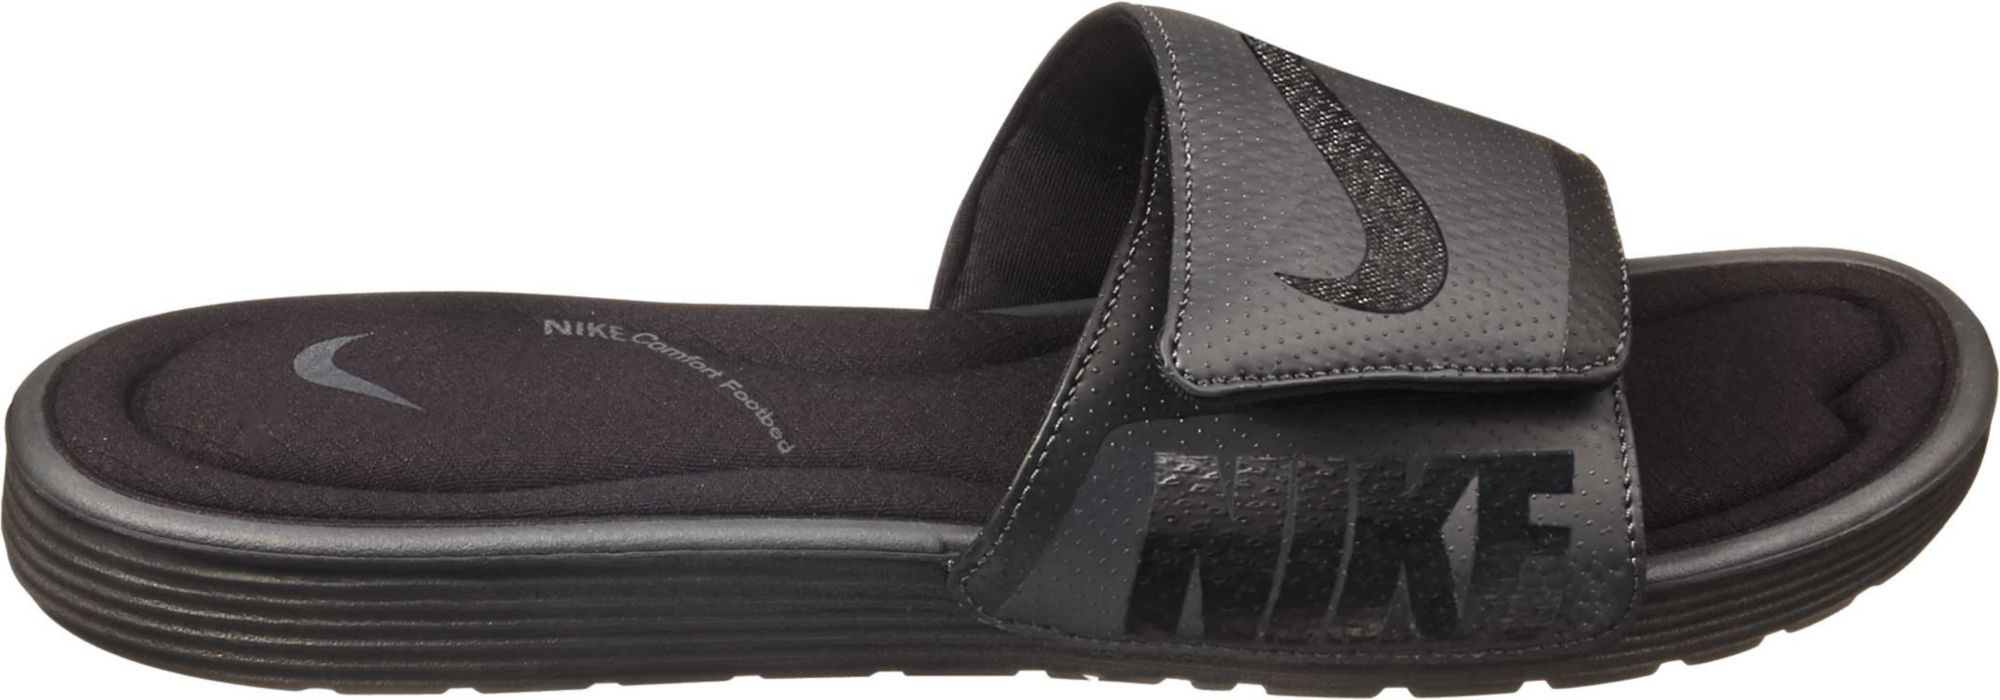 anthracite solarsoft is mens dick comforter slides footbed goods men sporting nike p black comfort s